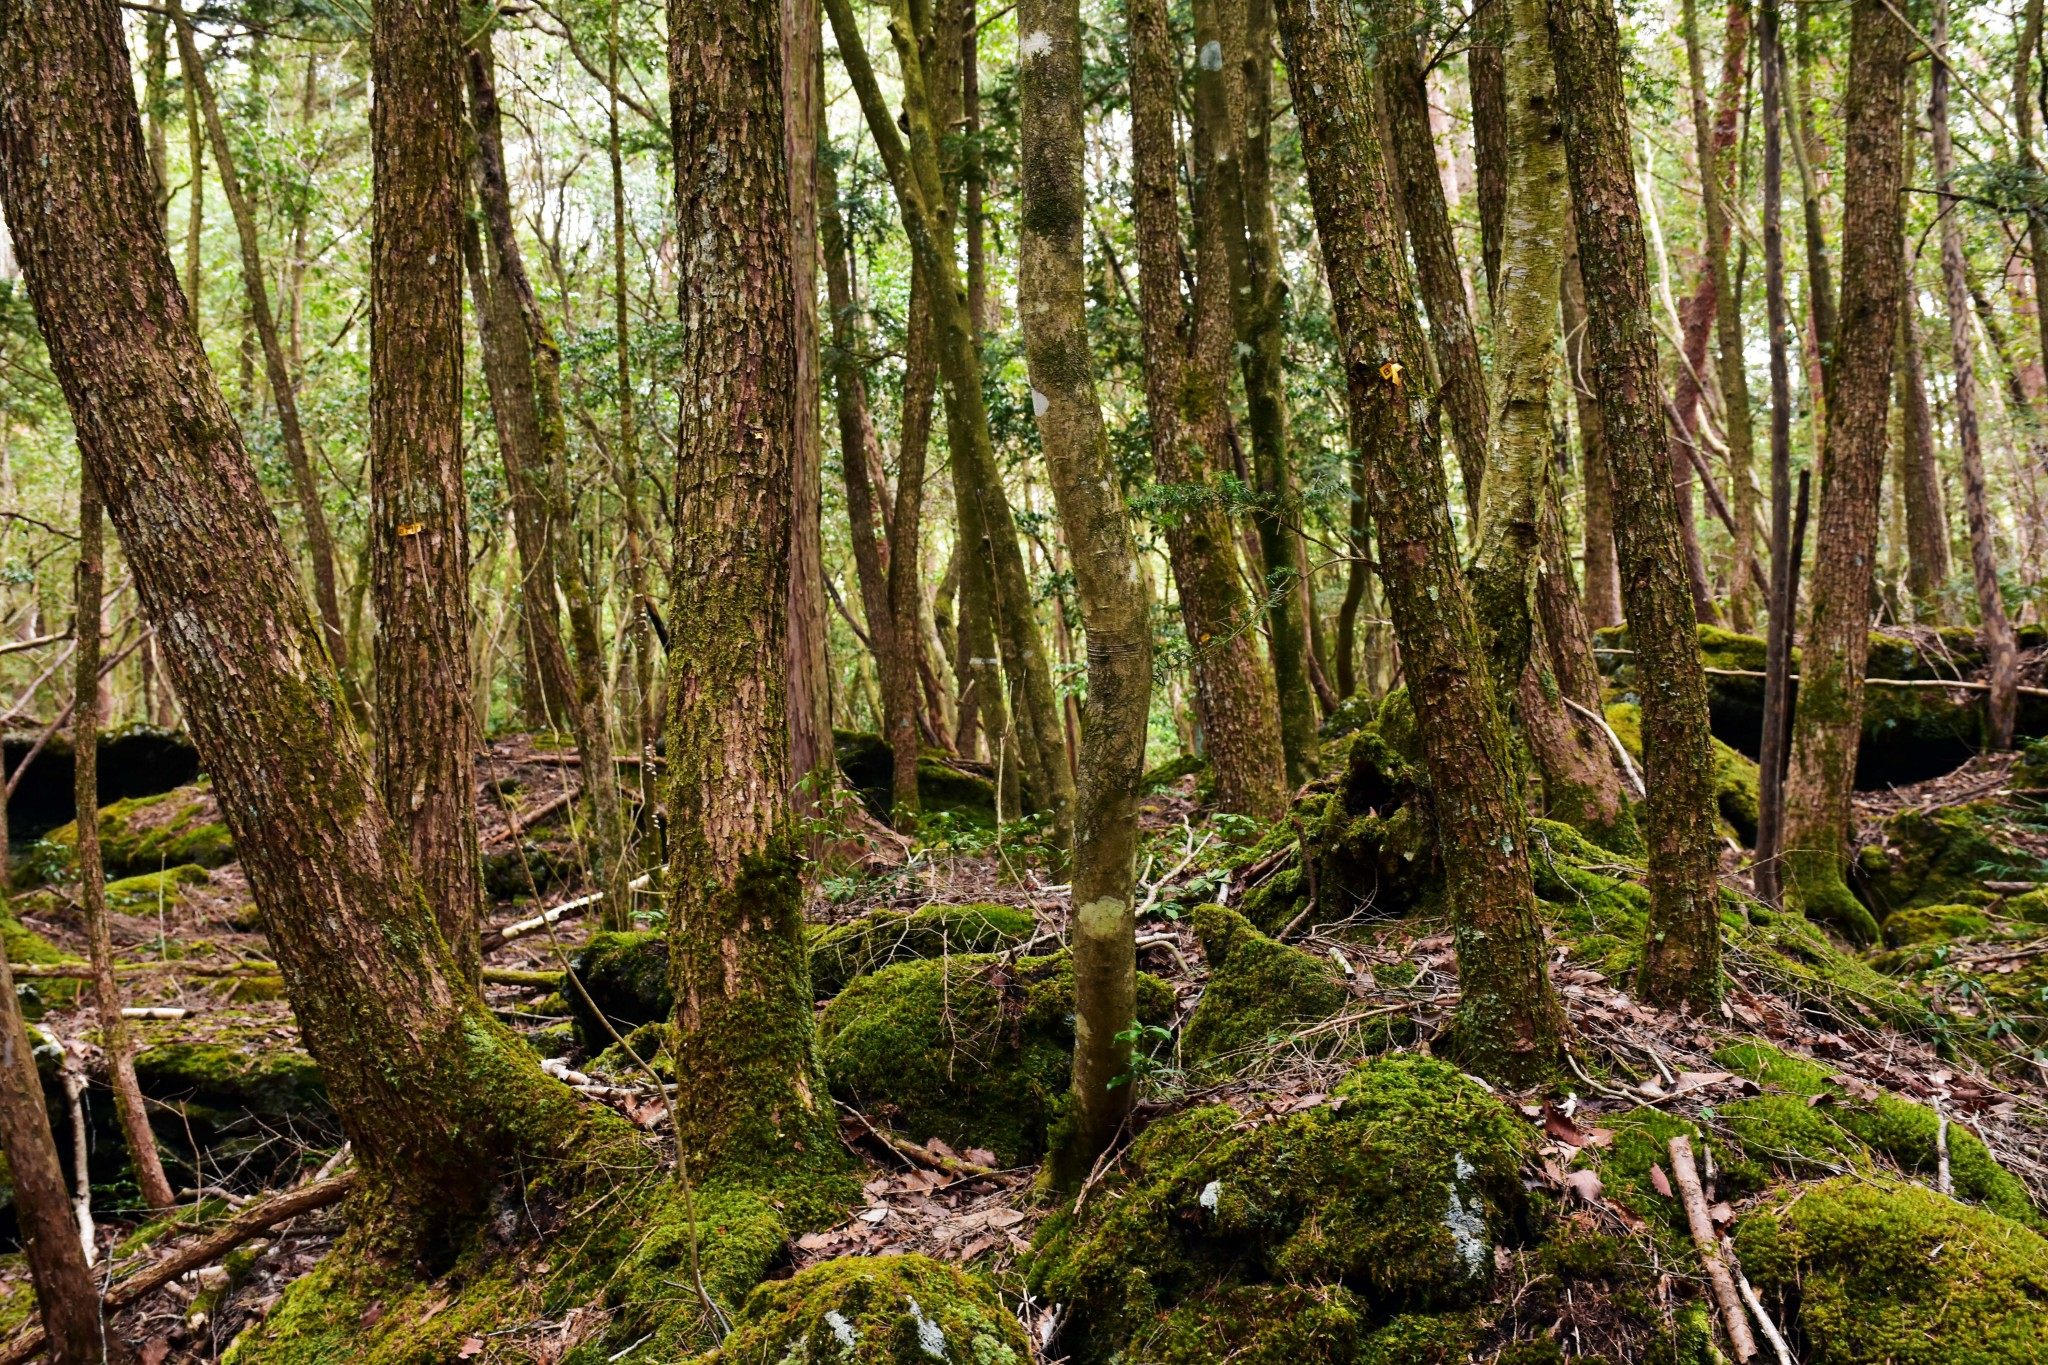 Trees found in the forest of Aokigahara while hiking.